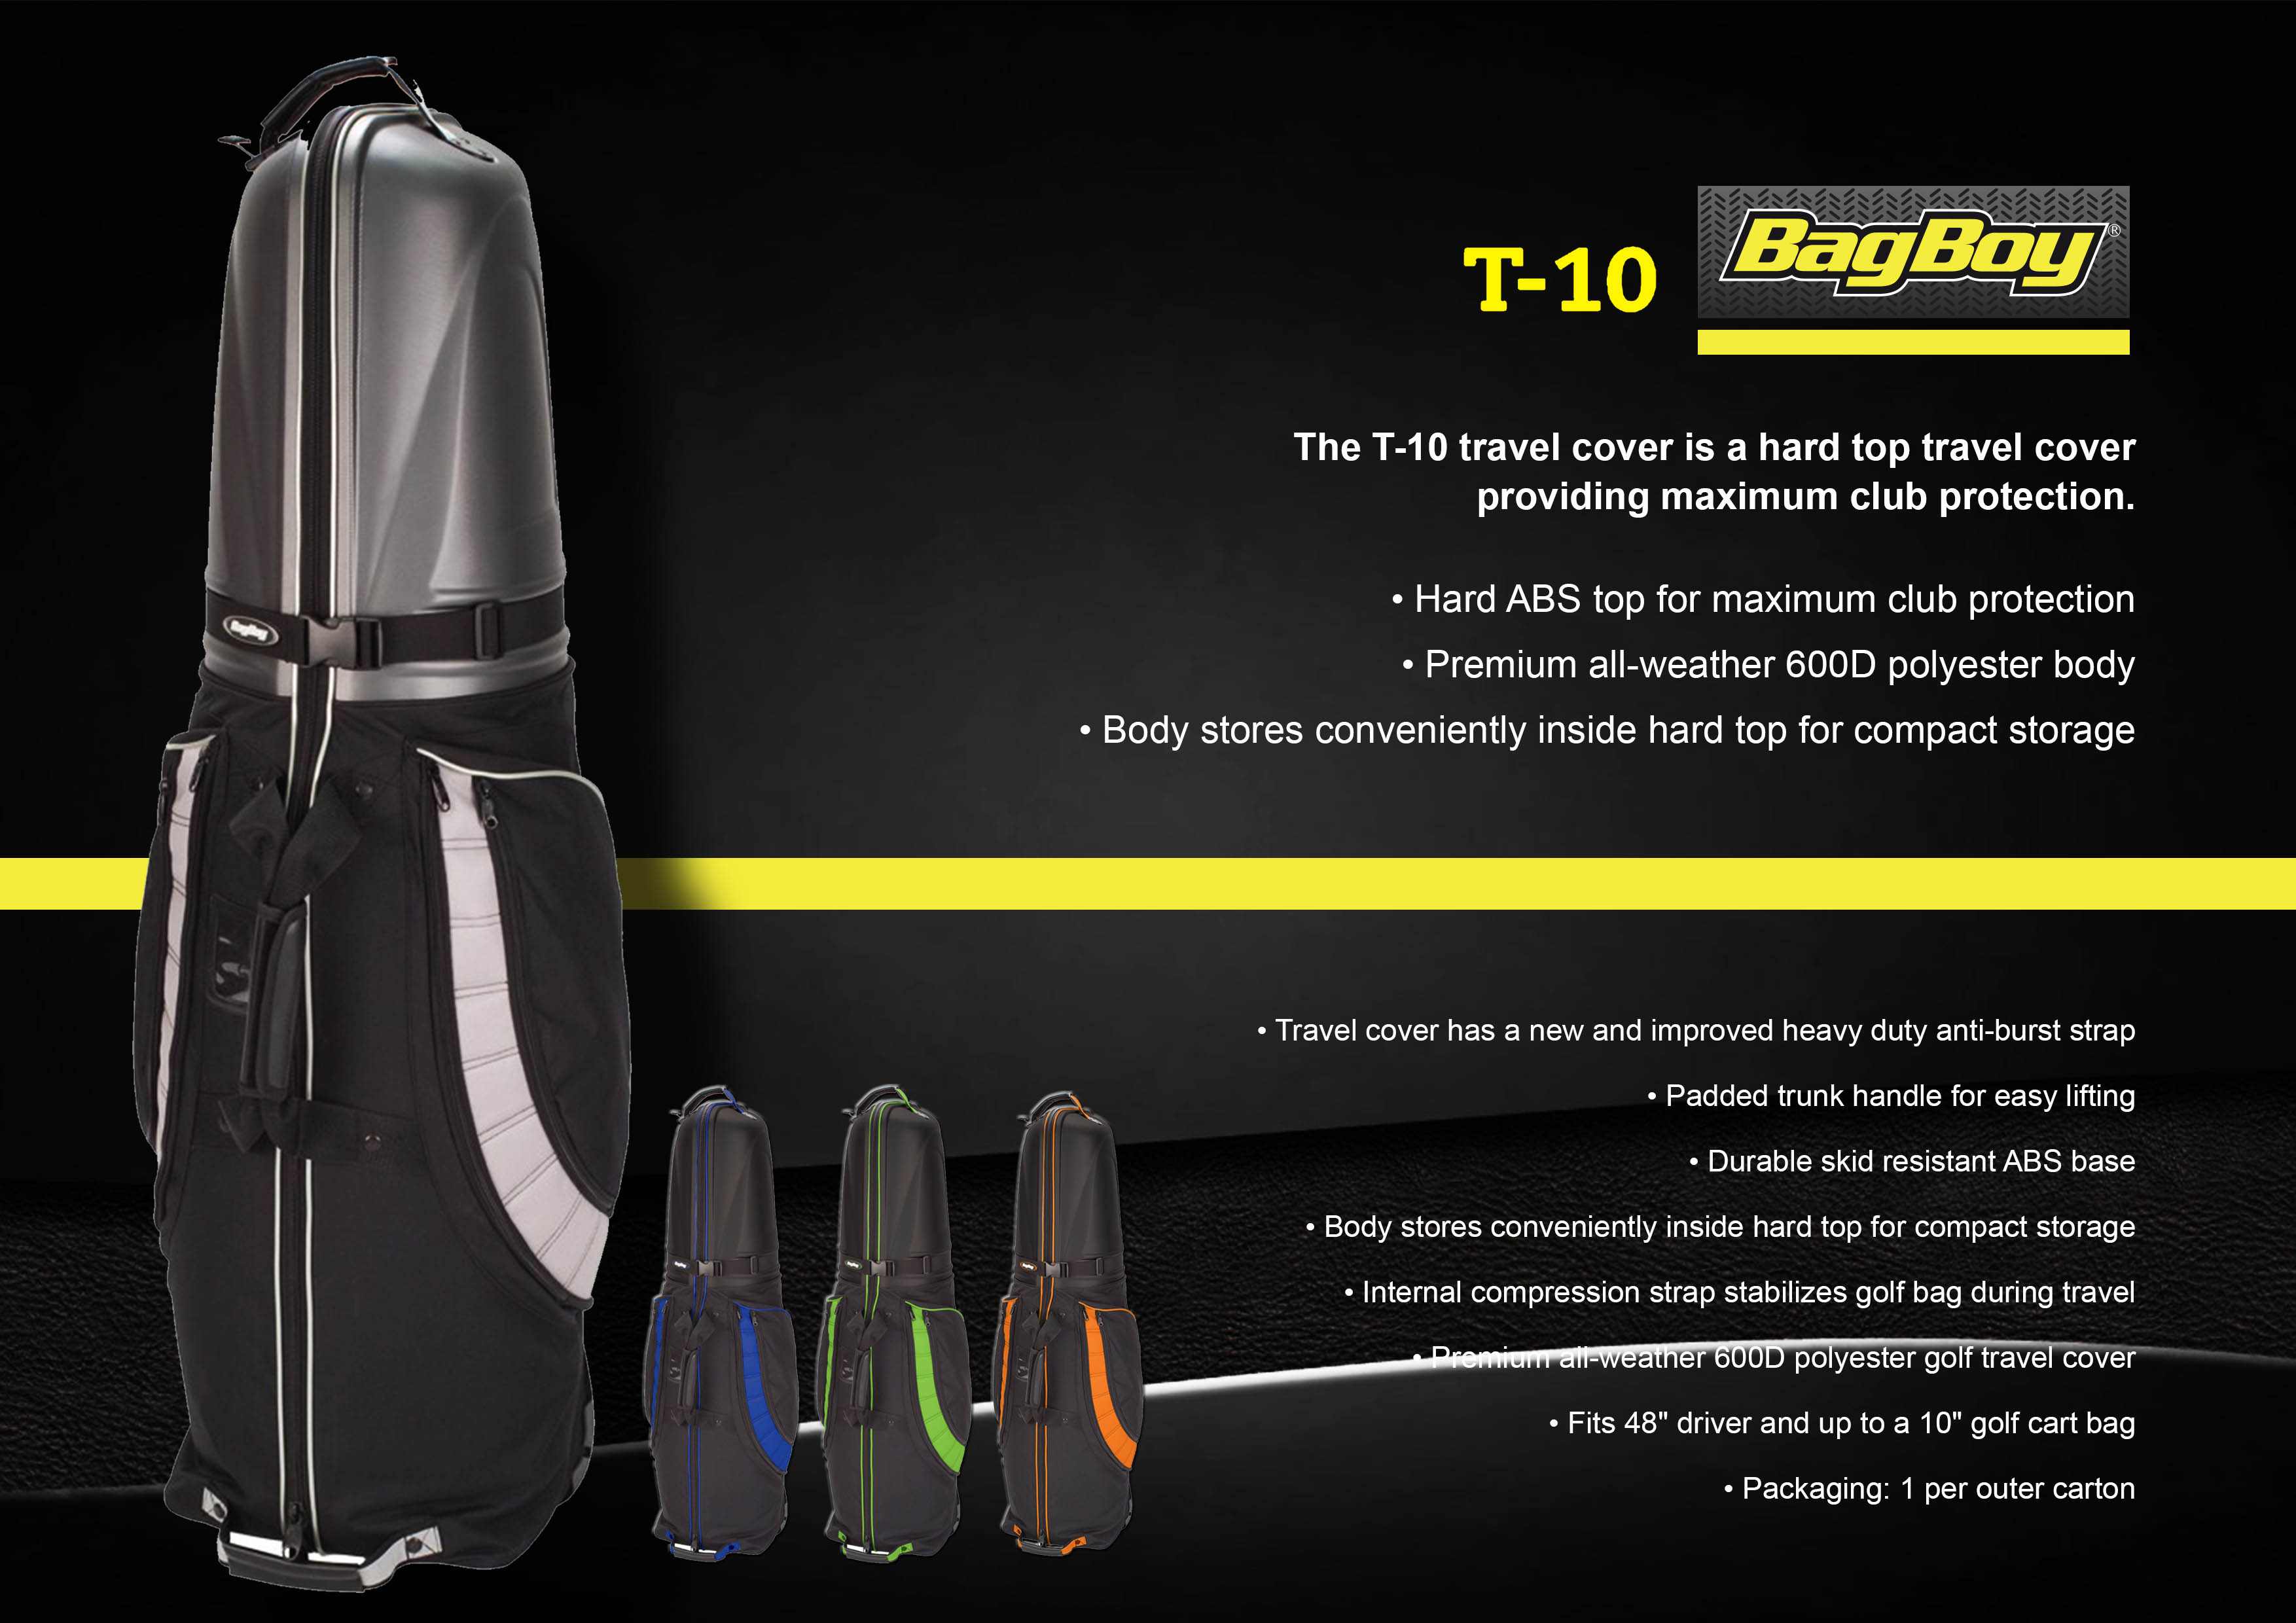 c7a7cf1b2d96 BAGBOY T10 | Distributor of Golf Equipments & Accessories Malaysia